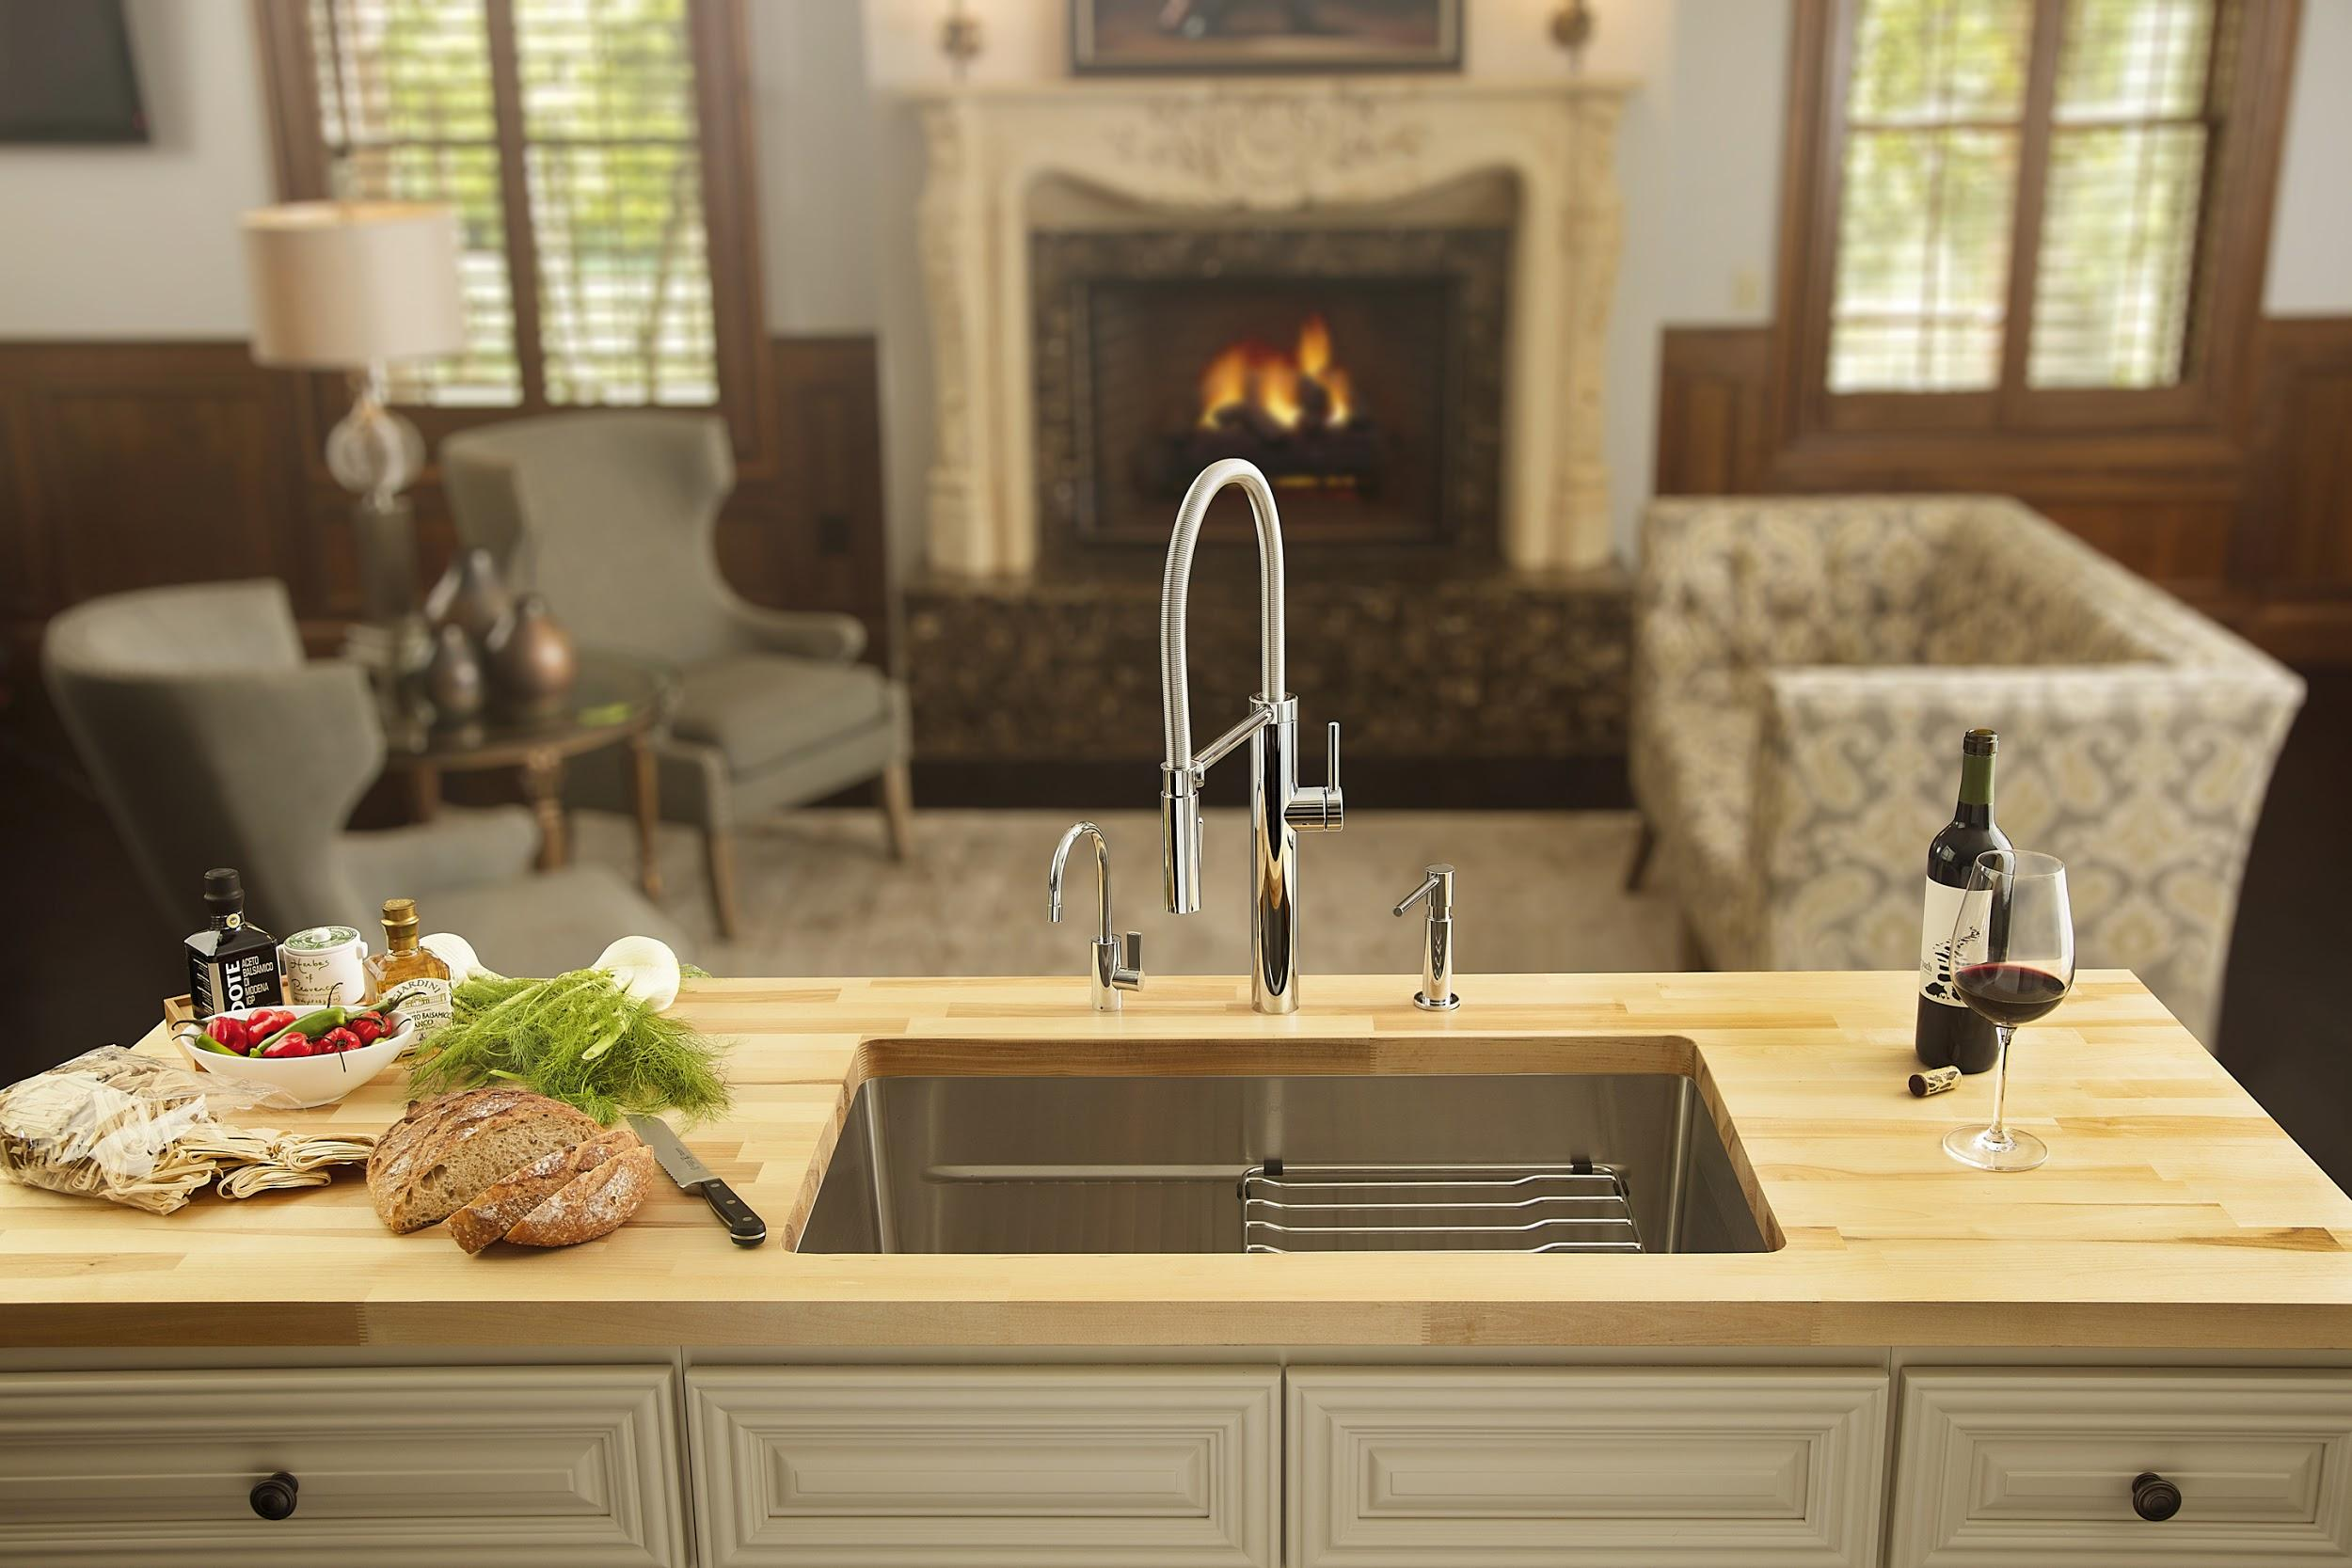 semi professional faucet and sink fits